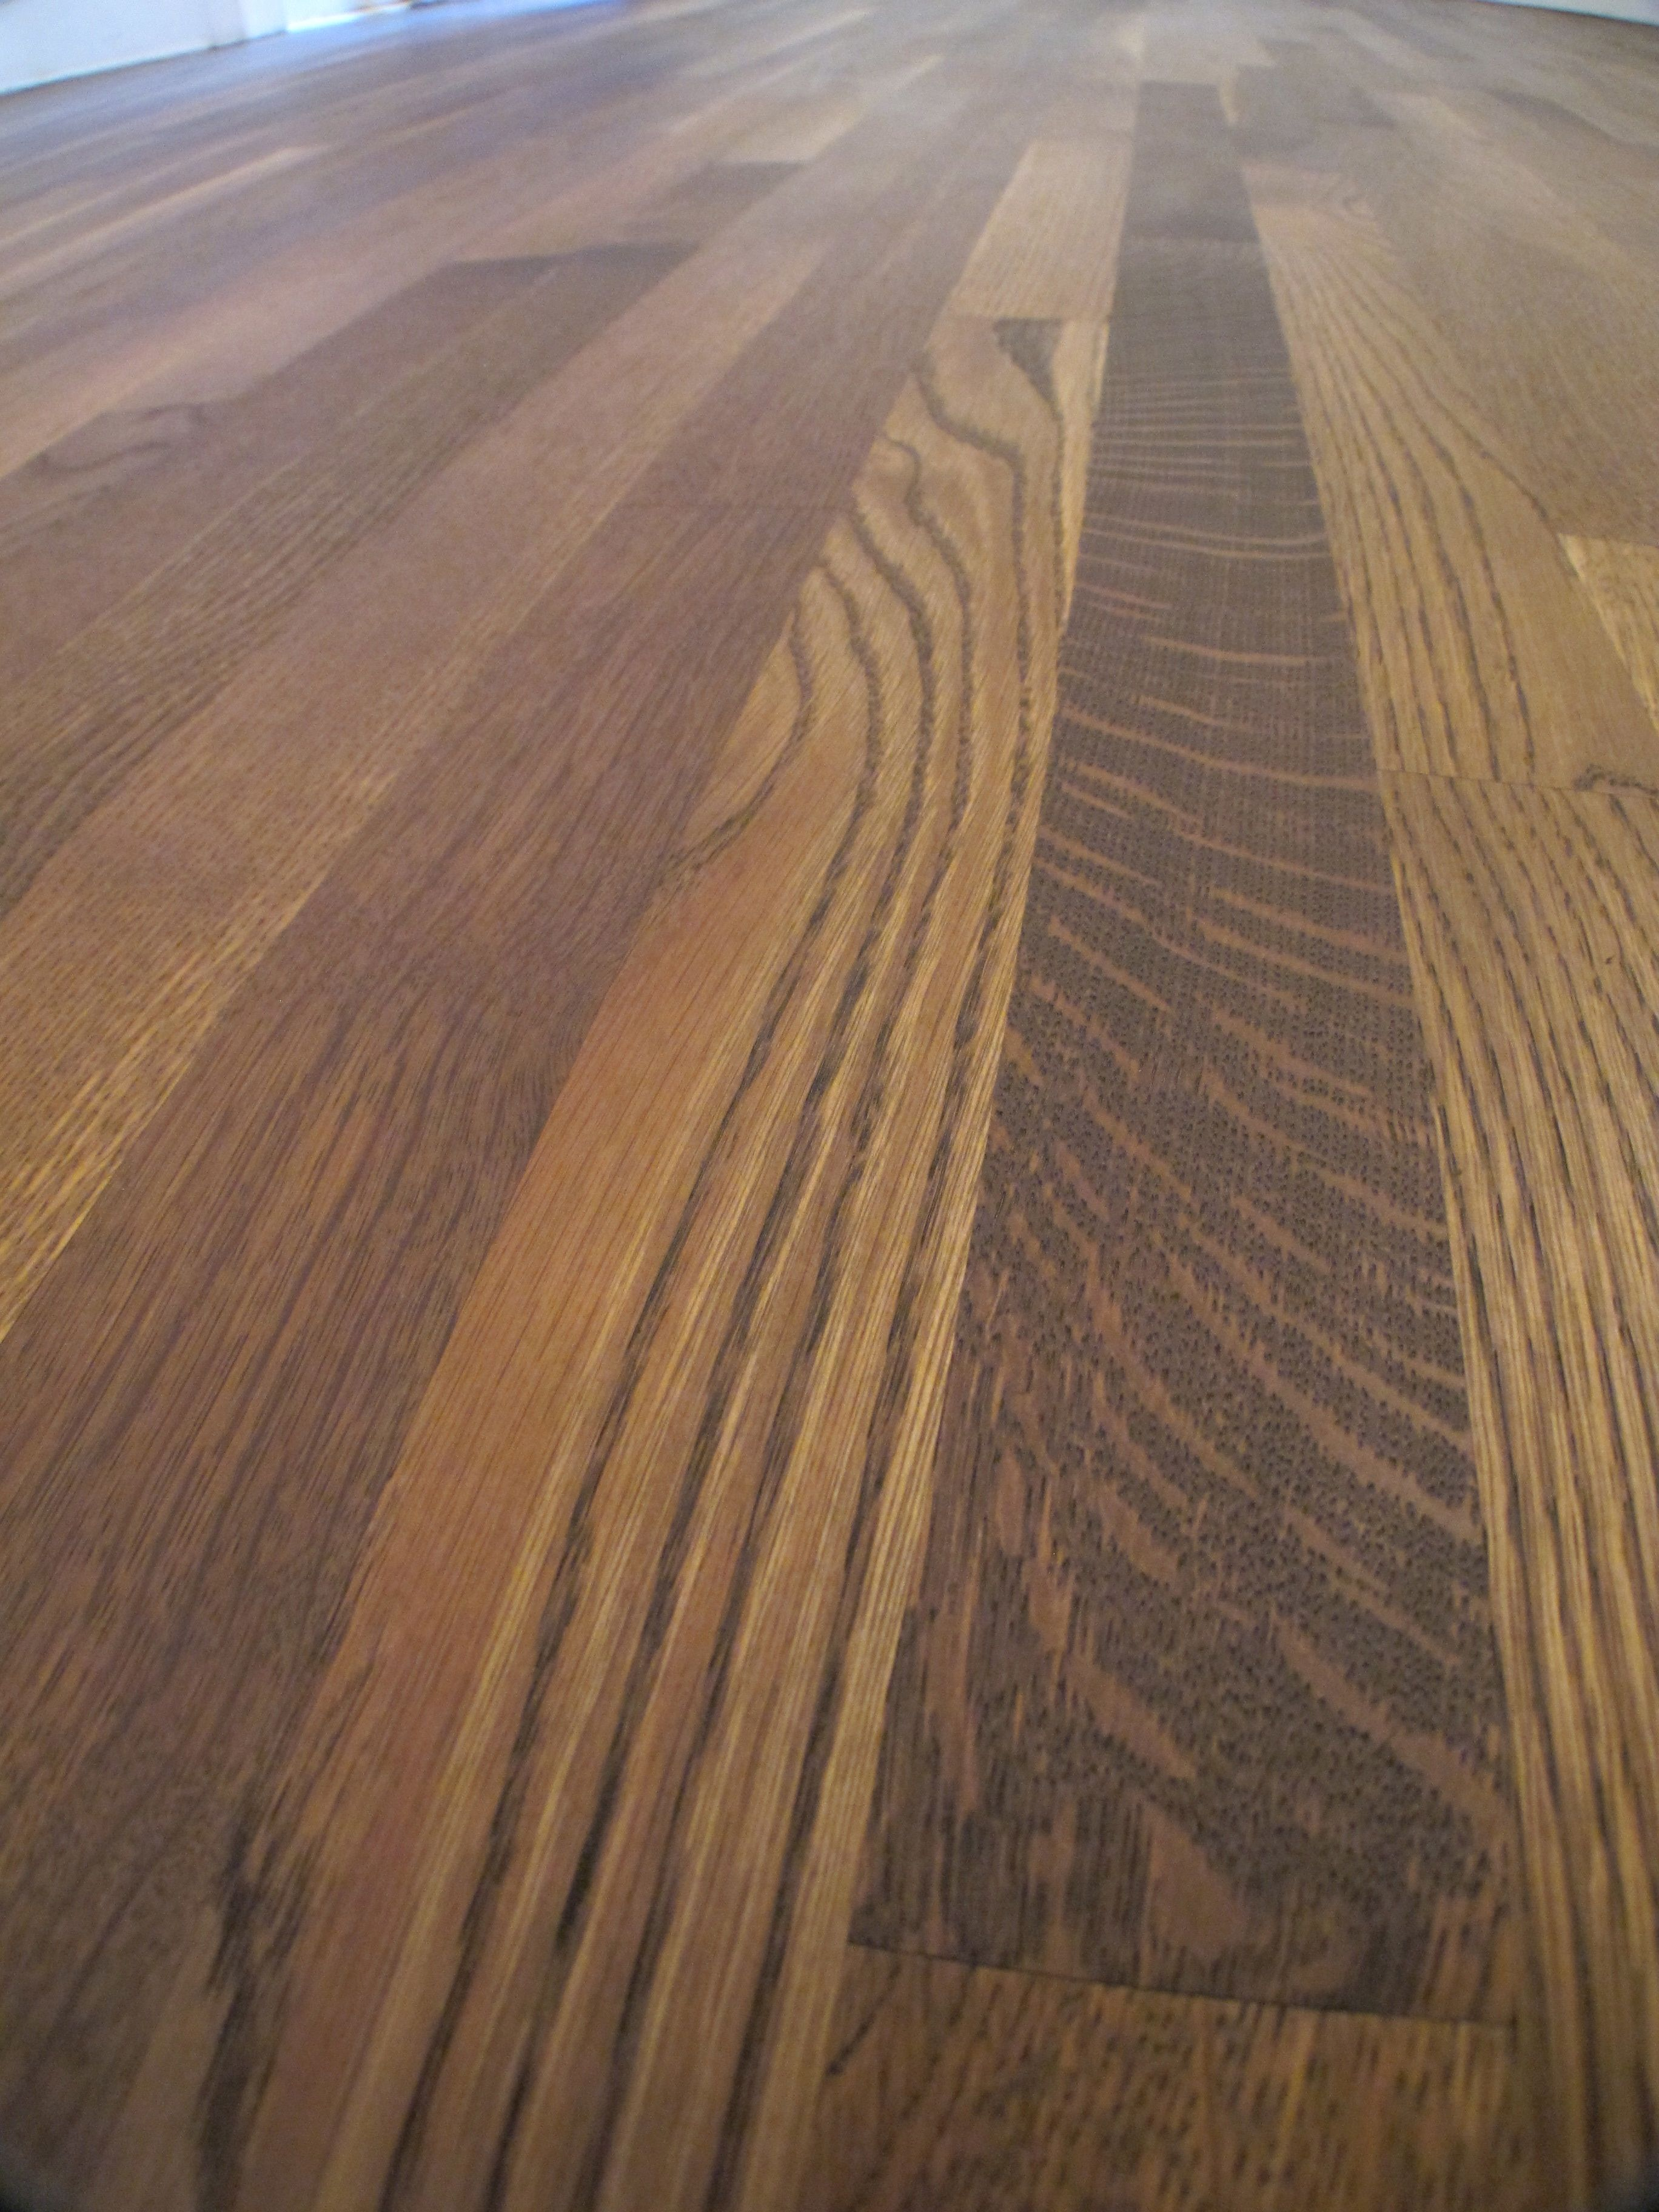 Hardwood Protection wood color and protection with 0 v.o.c. | eco floor | pinterest